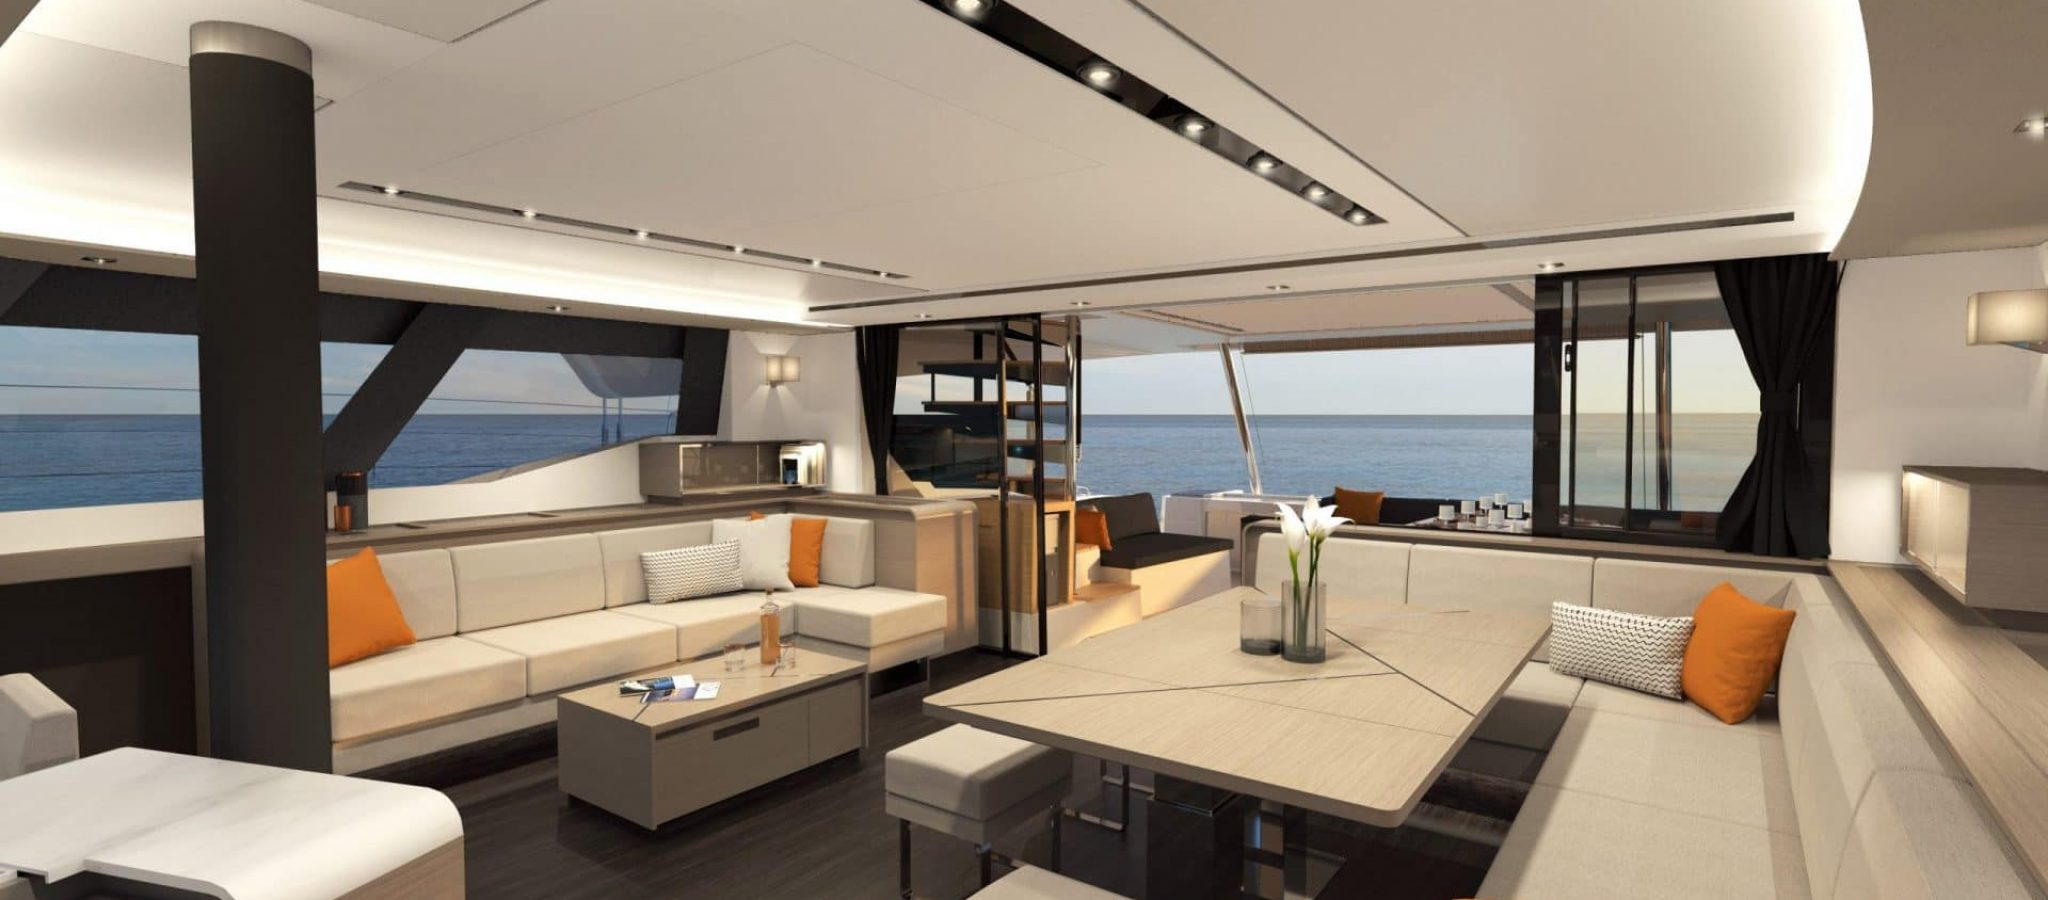 Samana-59-Fountaine-Pajot-Sailing-Catamarans_maestro-cabin_Interior-006--7-